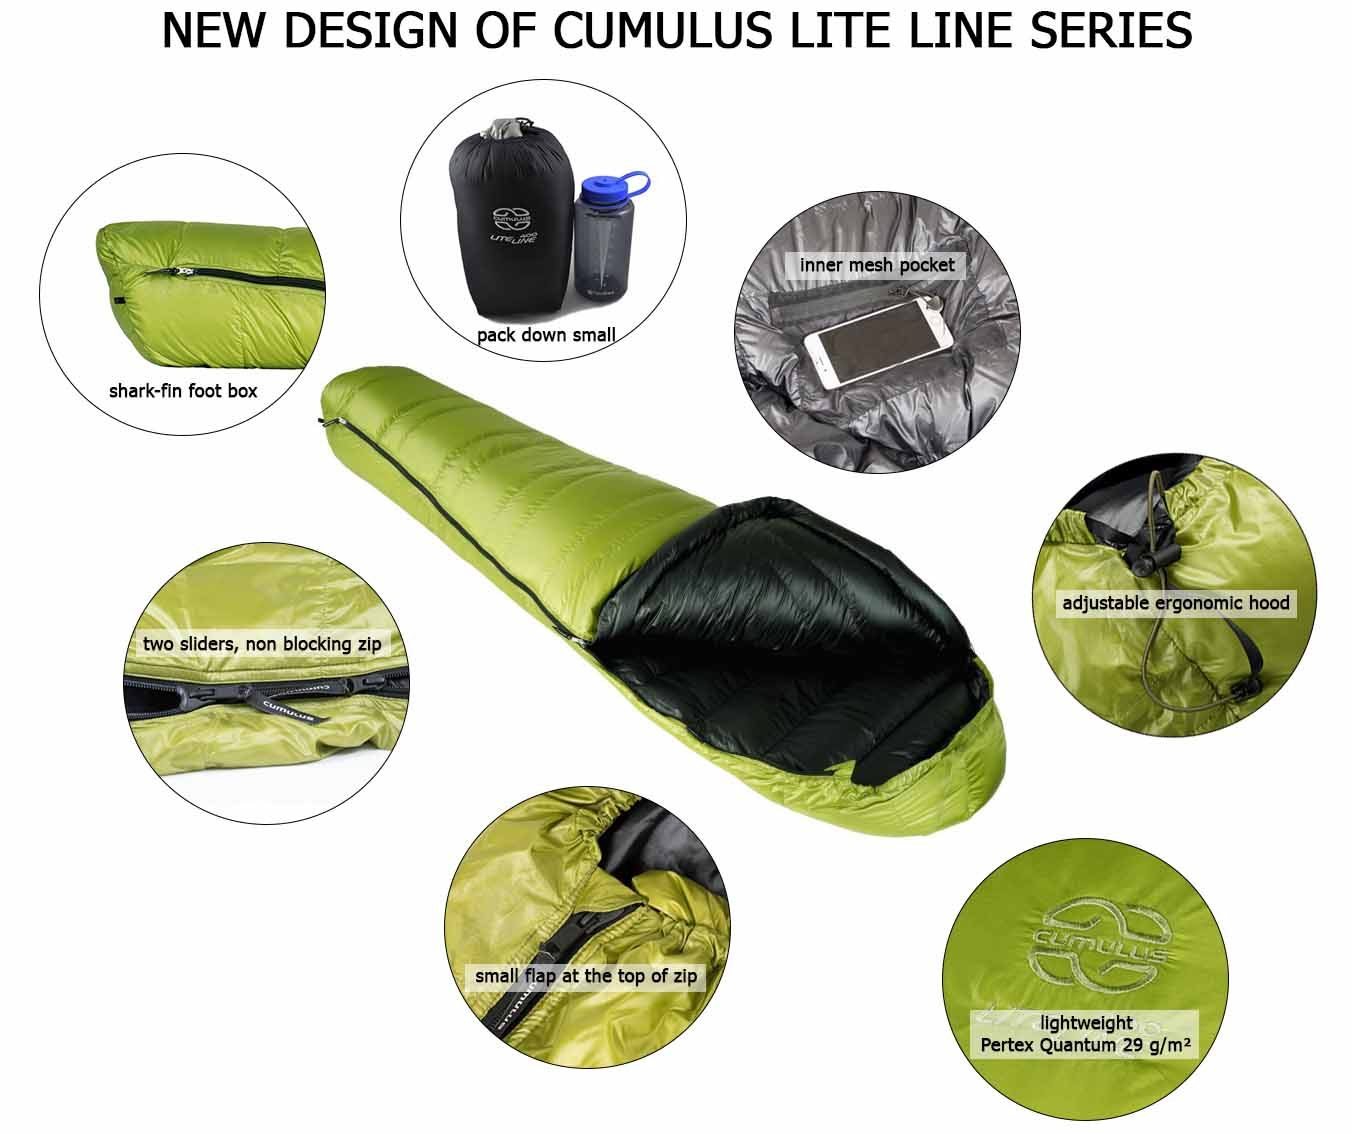 Cumulus Lite Line new design